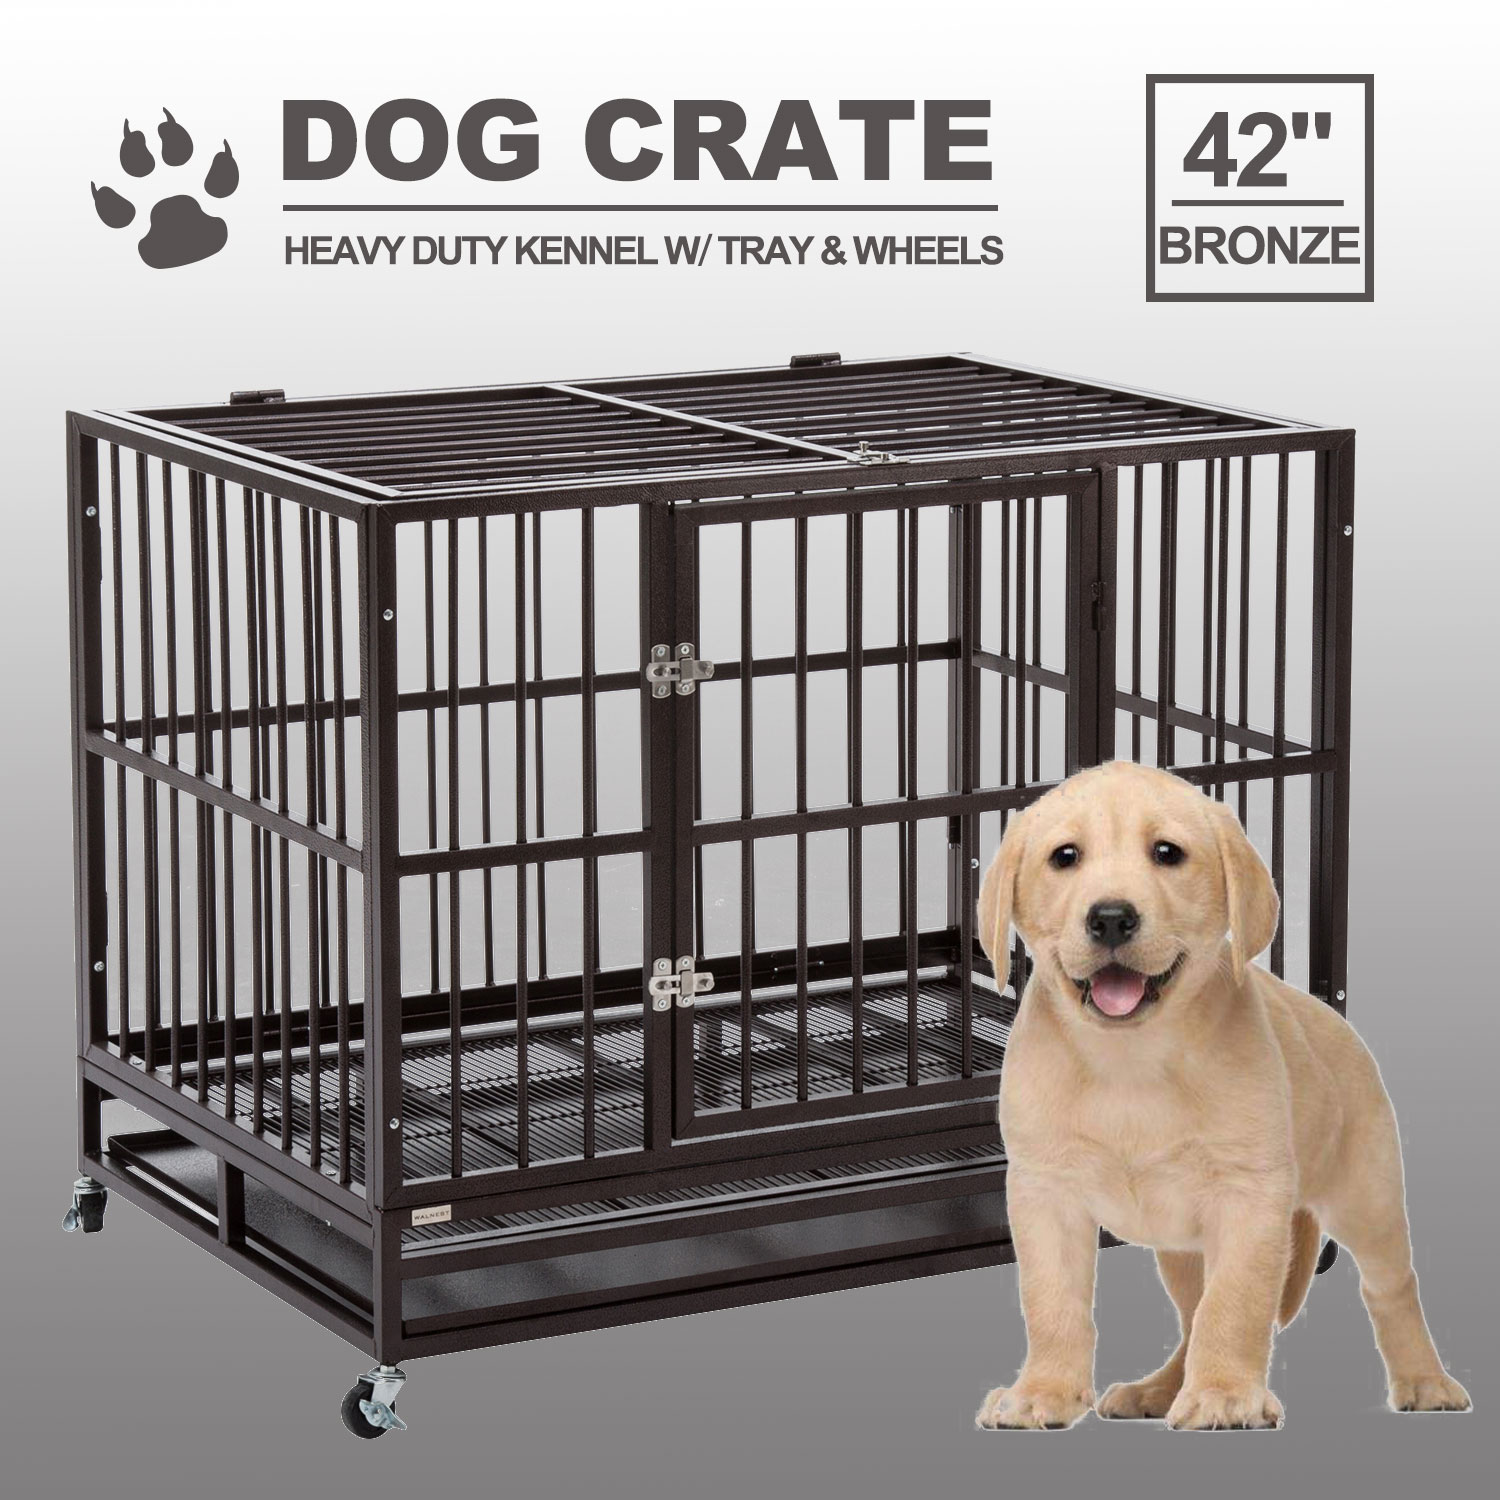 42 Quot Dog Crate Kenel Heavy Duty Pet Cage Playpen W Tray